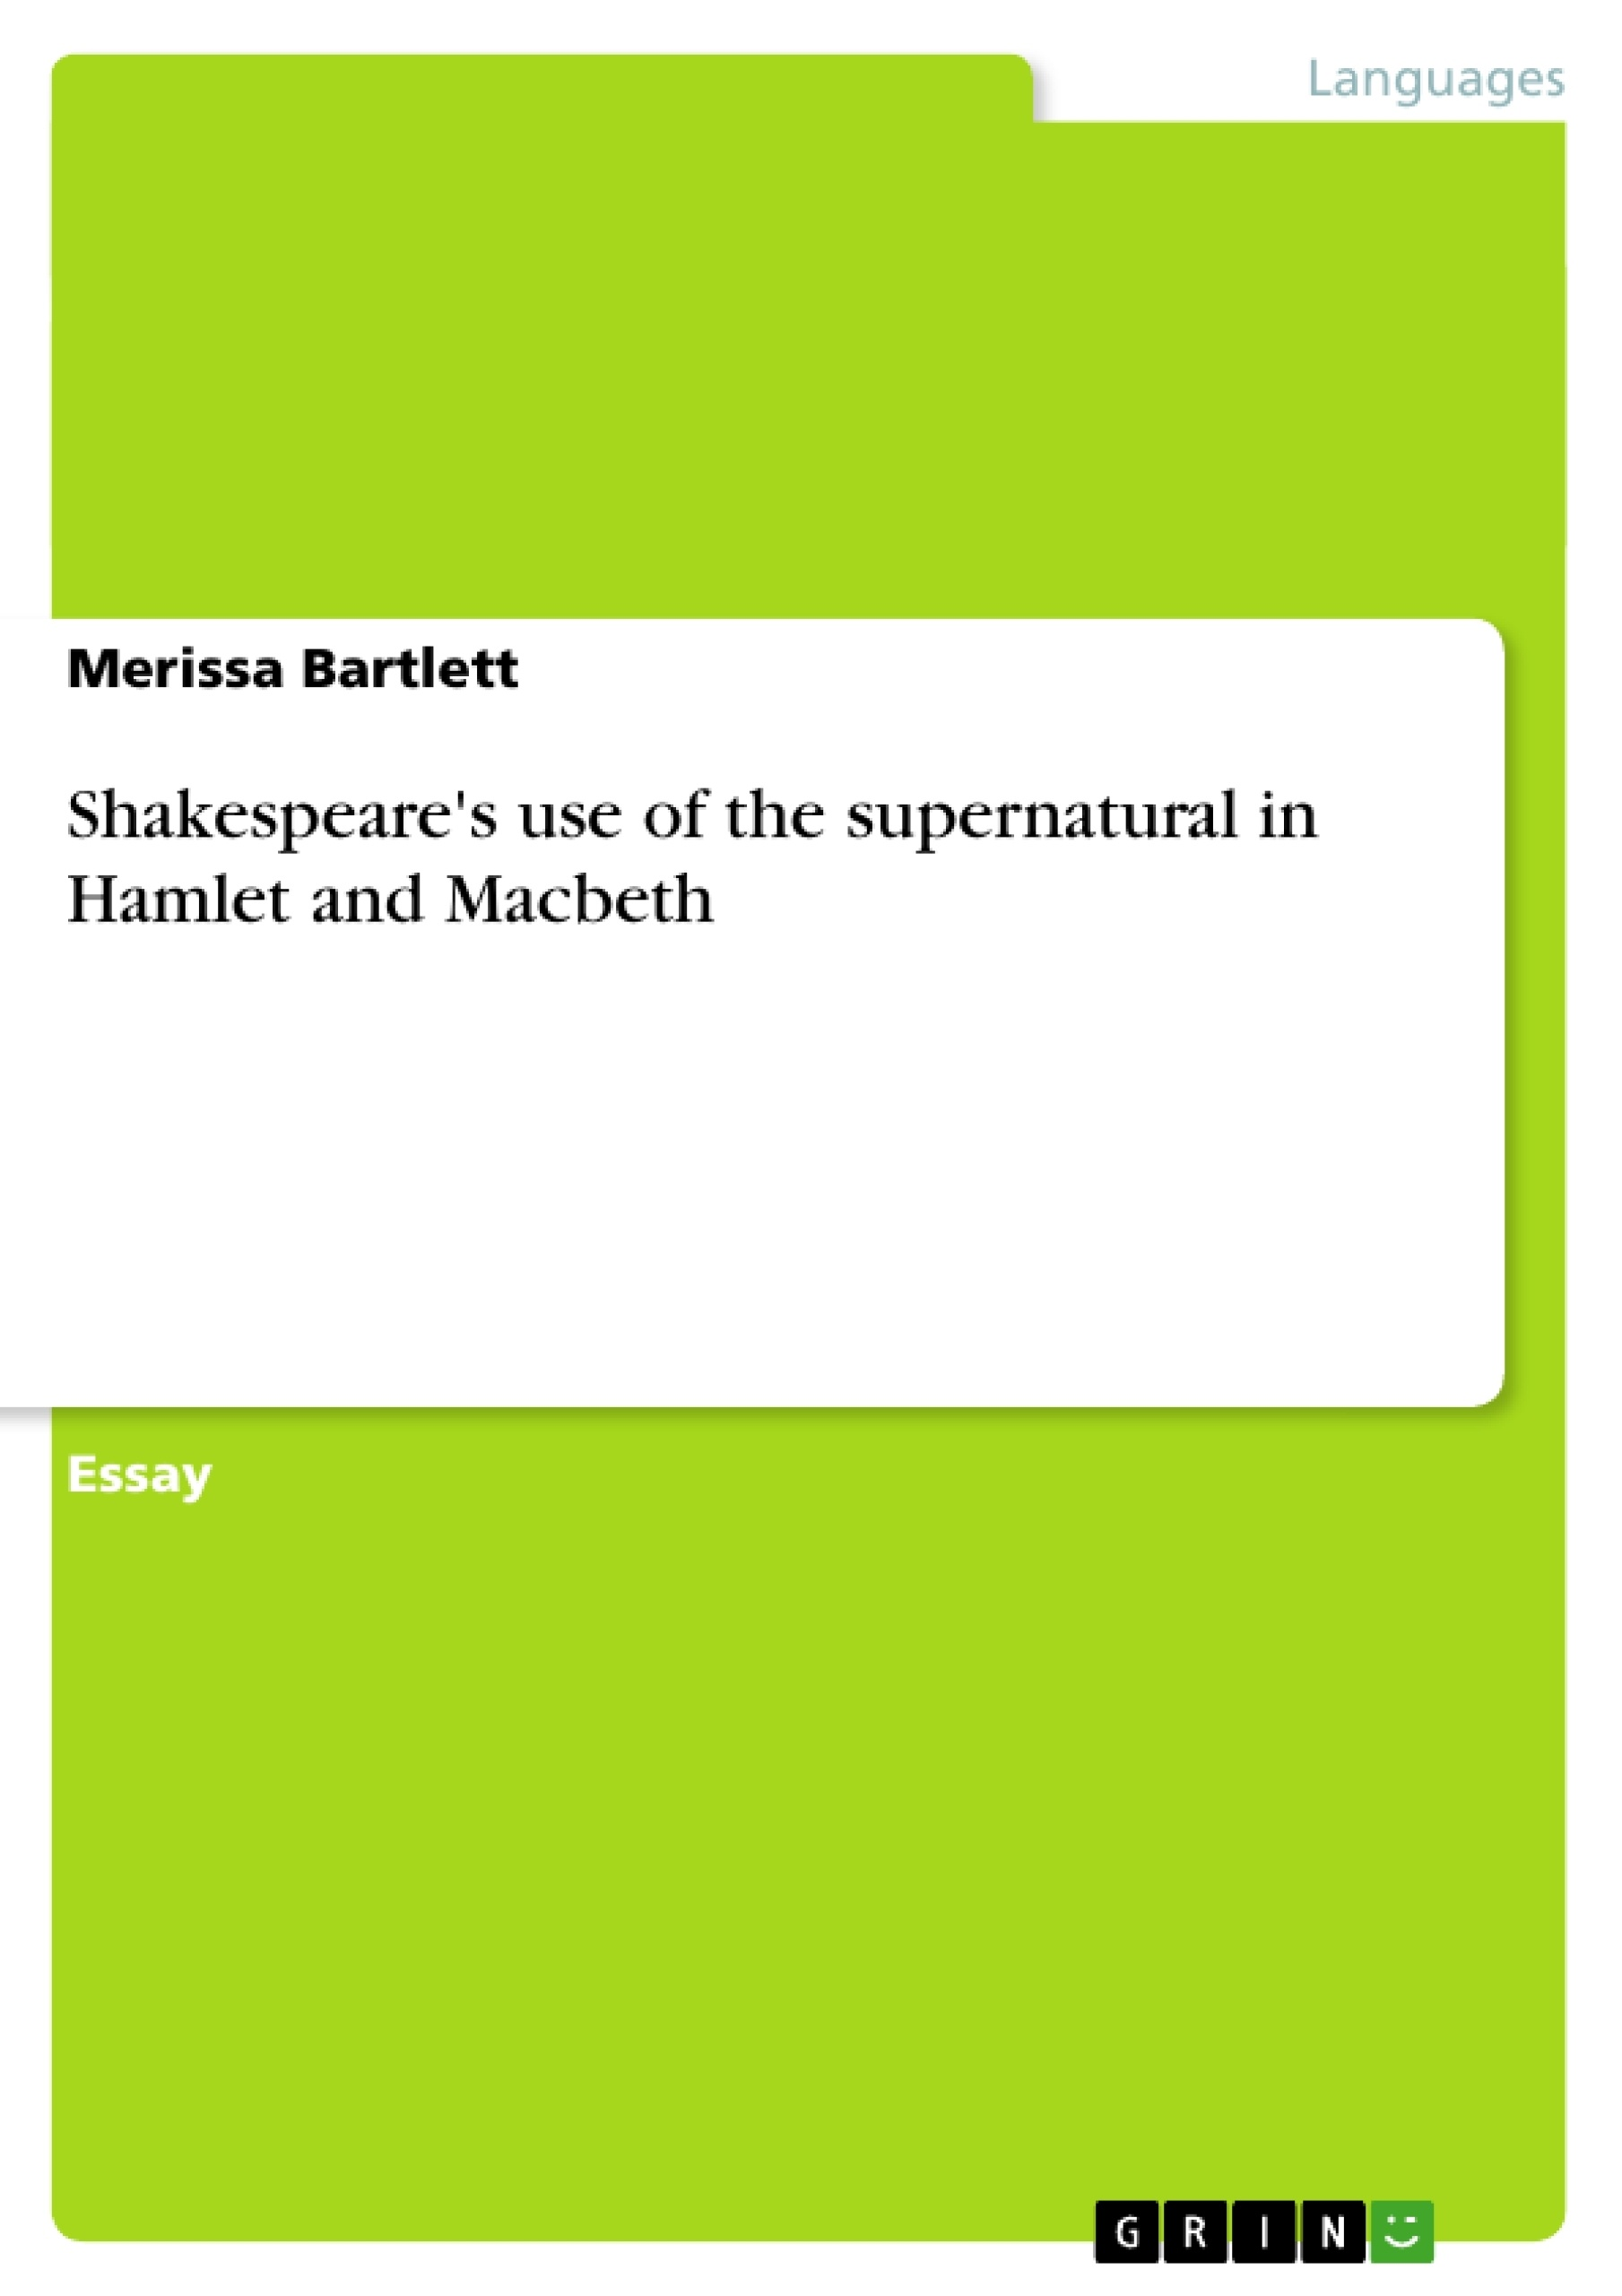 compare and contrast hamlet and macbeth